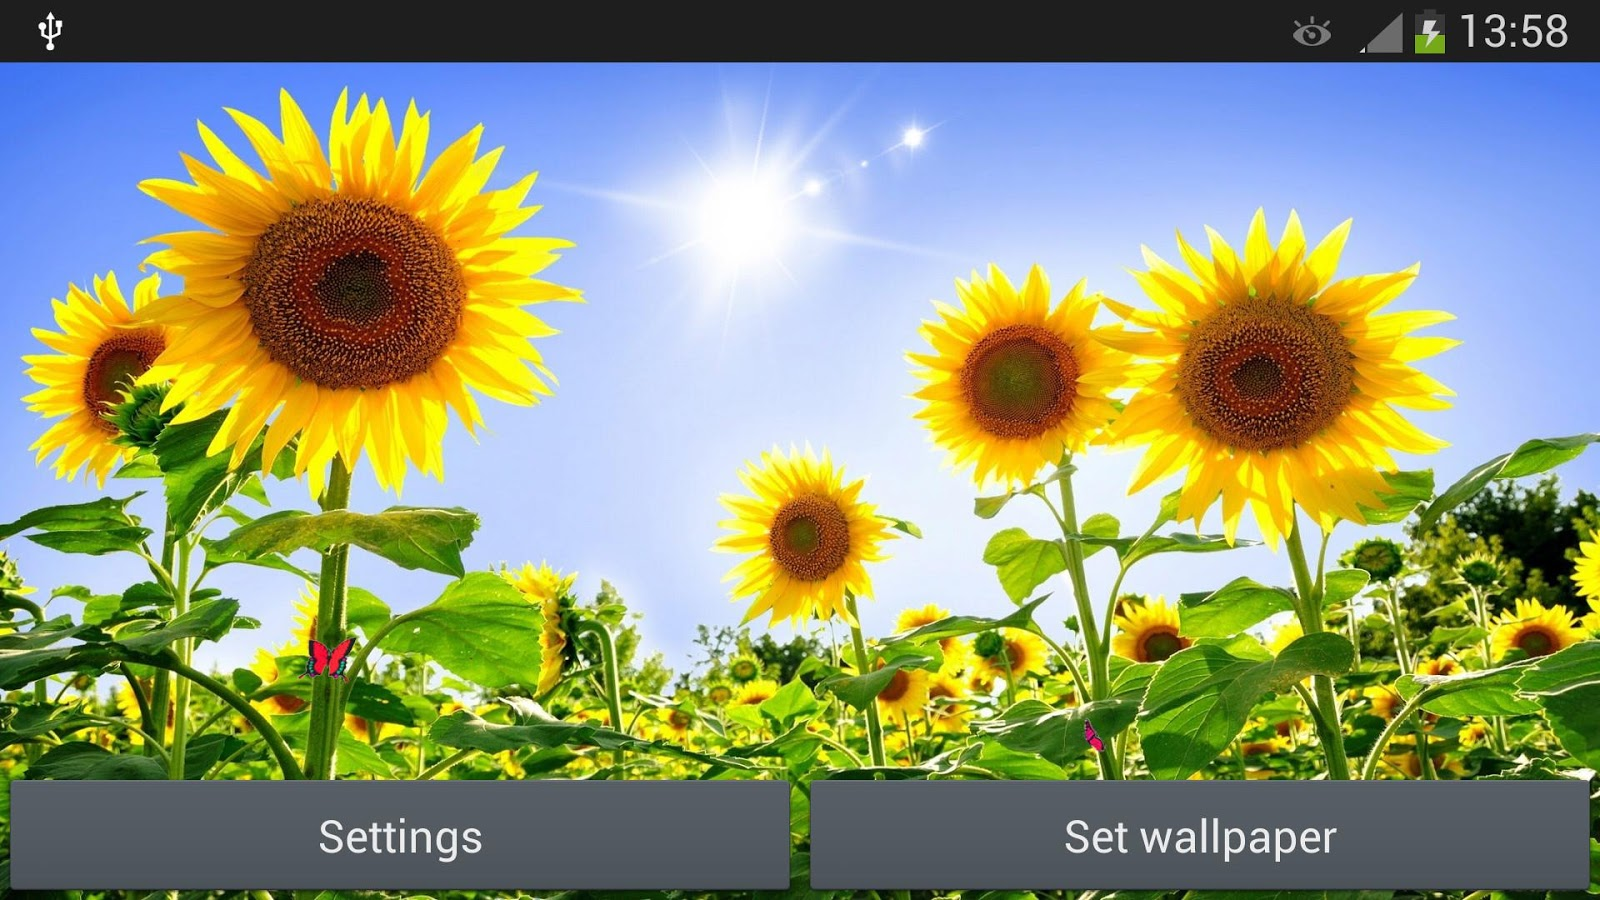 Sunflowers Live Wallpaper   Android Apps on Google Play 1600x900